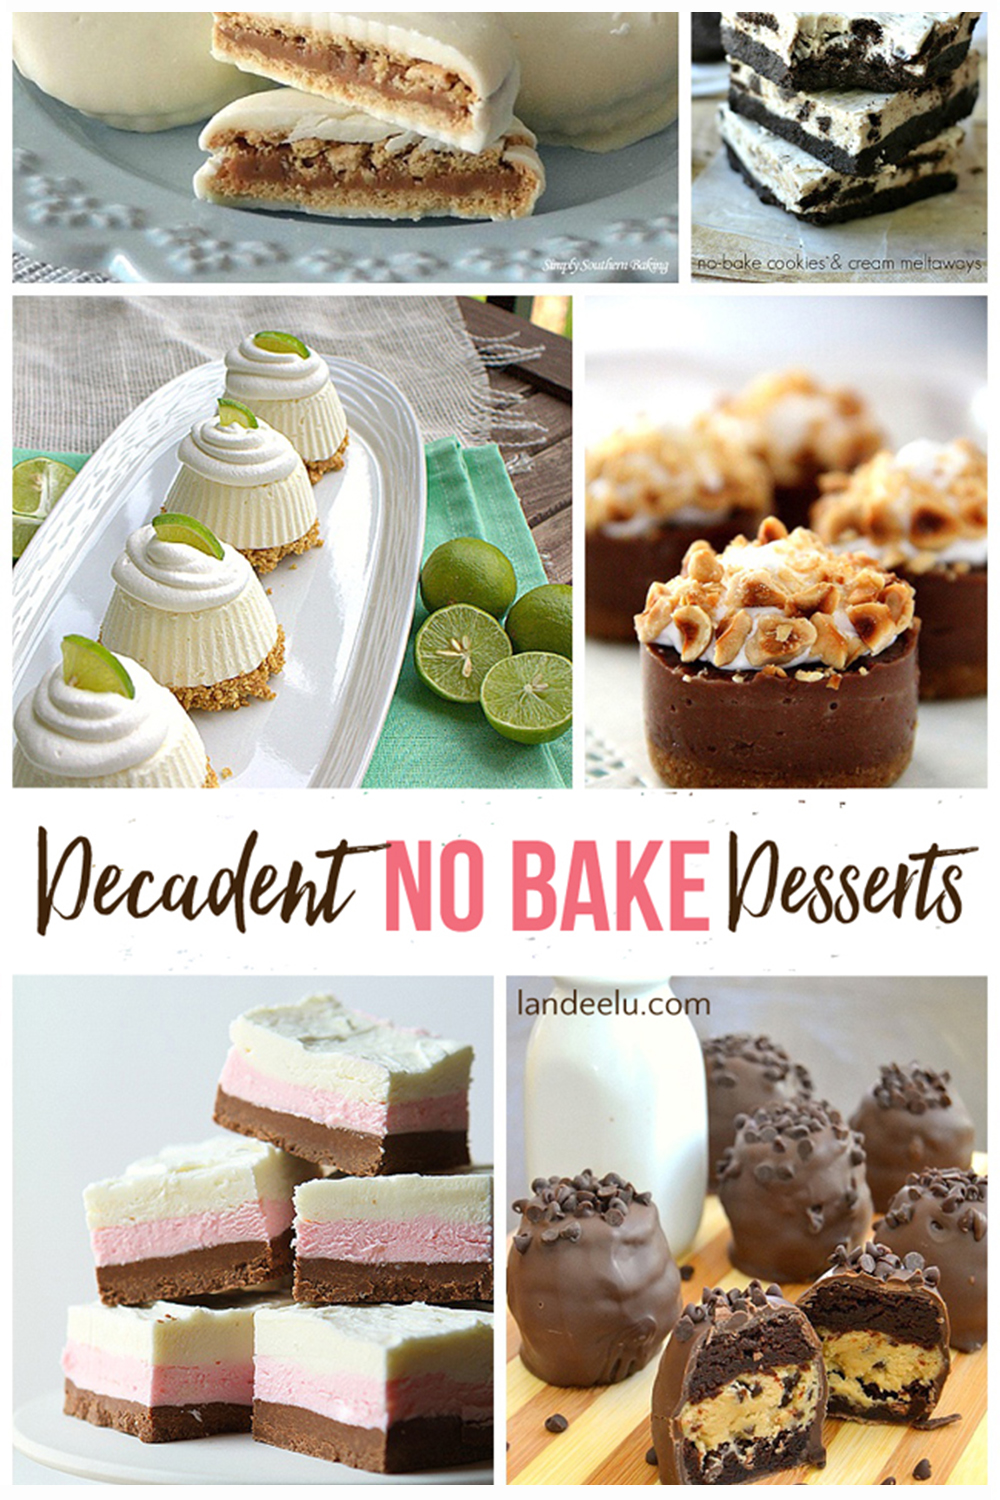 Delicious No Bake Dessert Recipes that are perfect when the weather starts warming up! #nobakedesserts #dessertrecipes #nobake #recipes